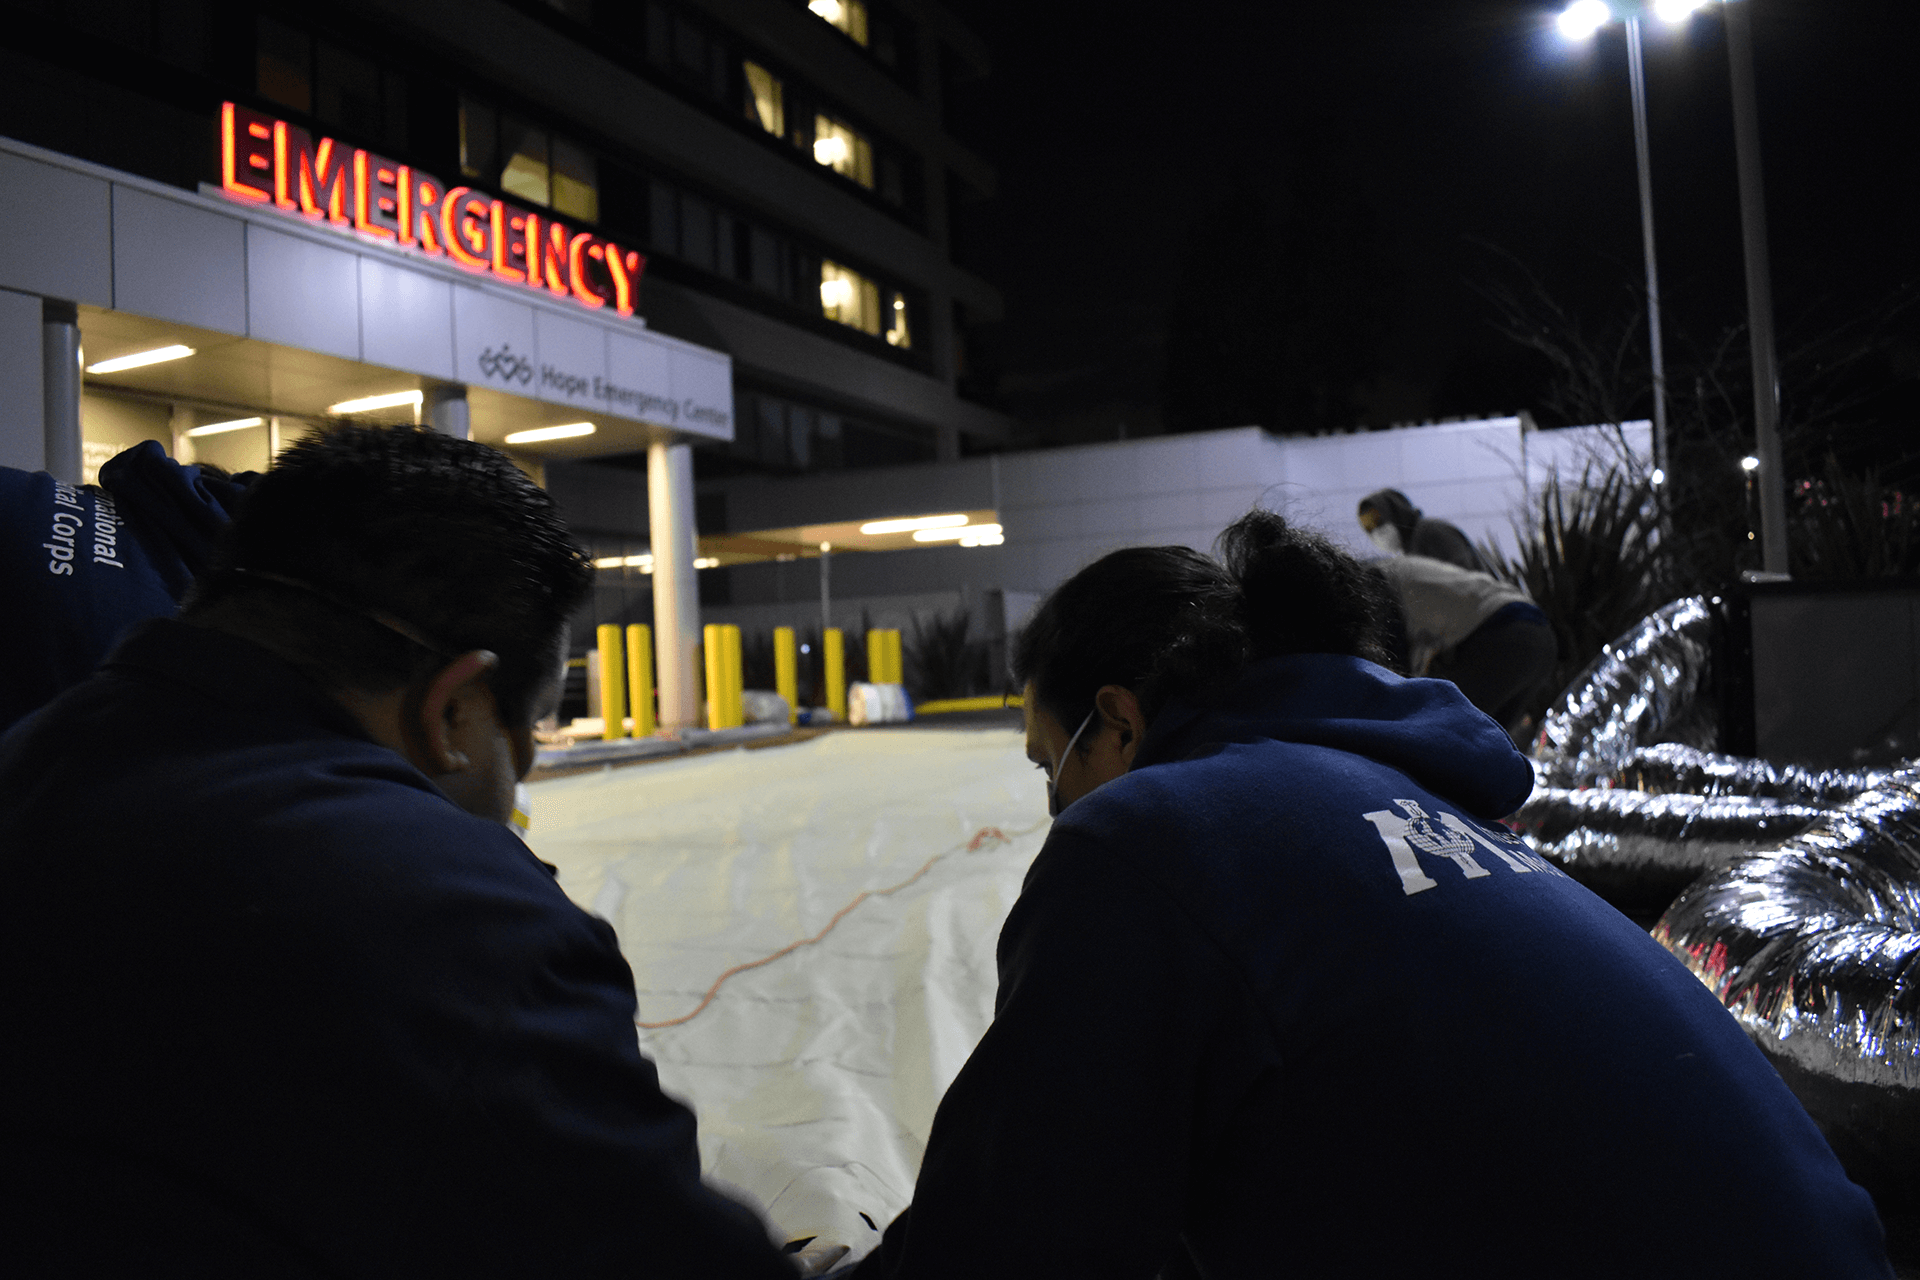 In March 2020, International Medical Corps set up an emergency medical field unit outside of Martin Luther King, Jr. Community Hospital in Los Angeles to support underserved, low-income communities hit hard by COVID-19. In response to COVID-19, International Medical Corps deployed 33 similar units across the US by May 2020.